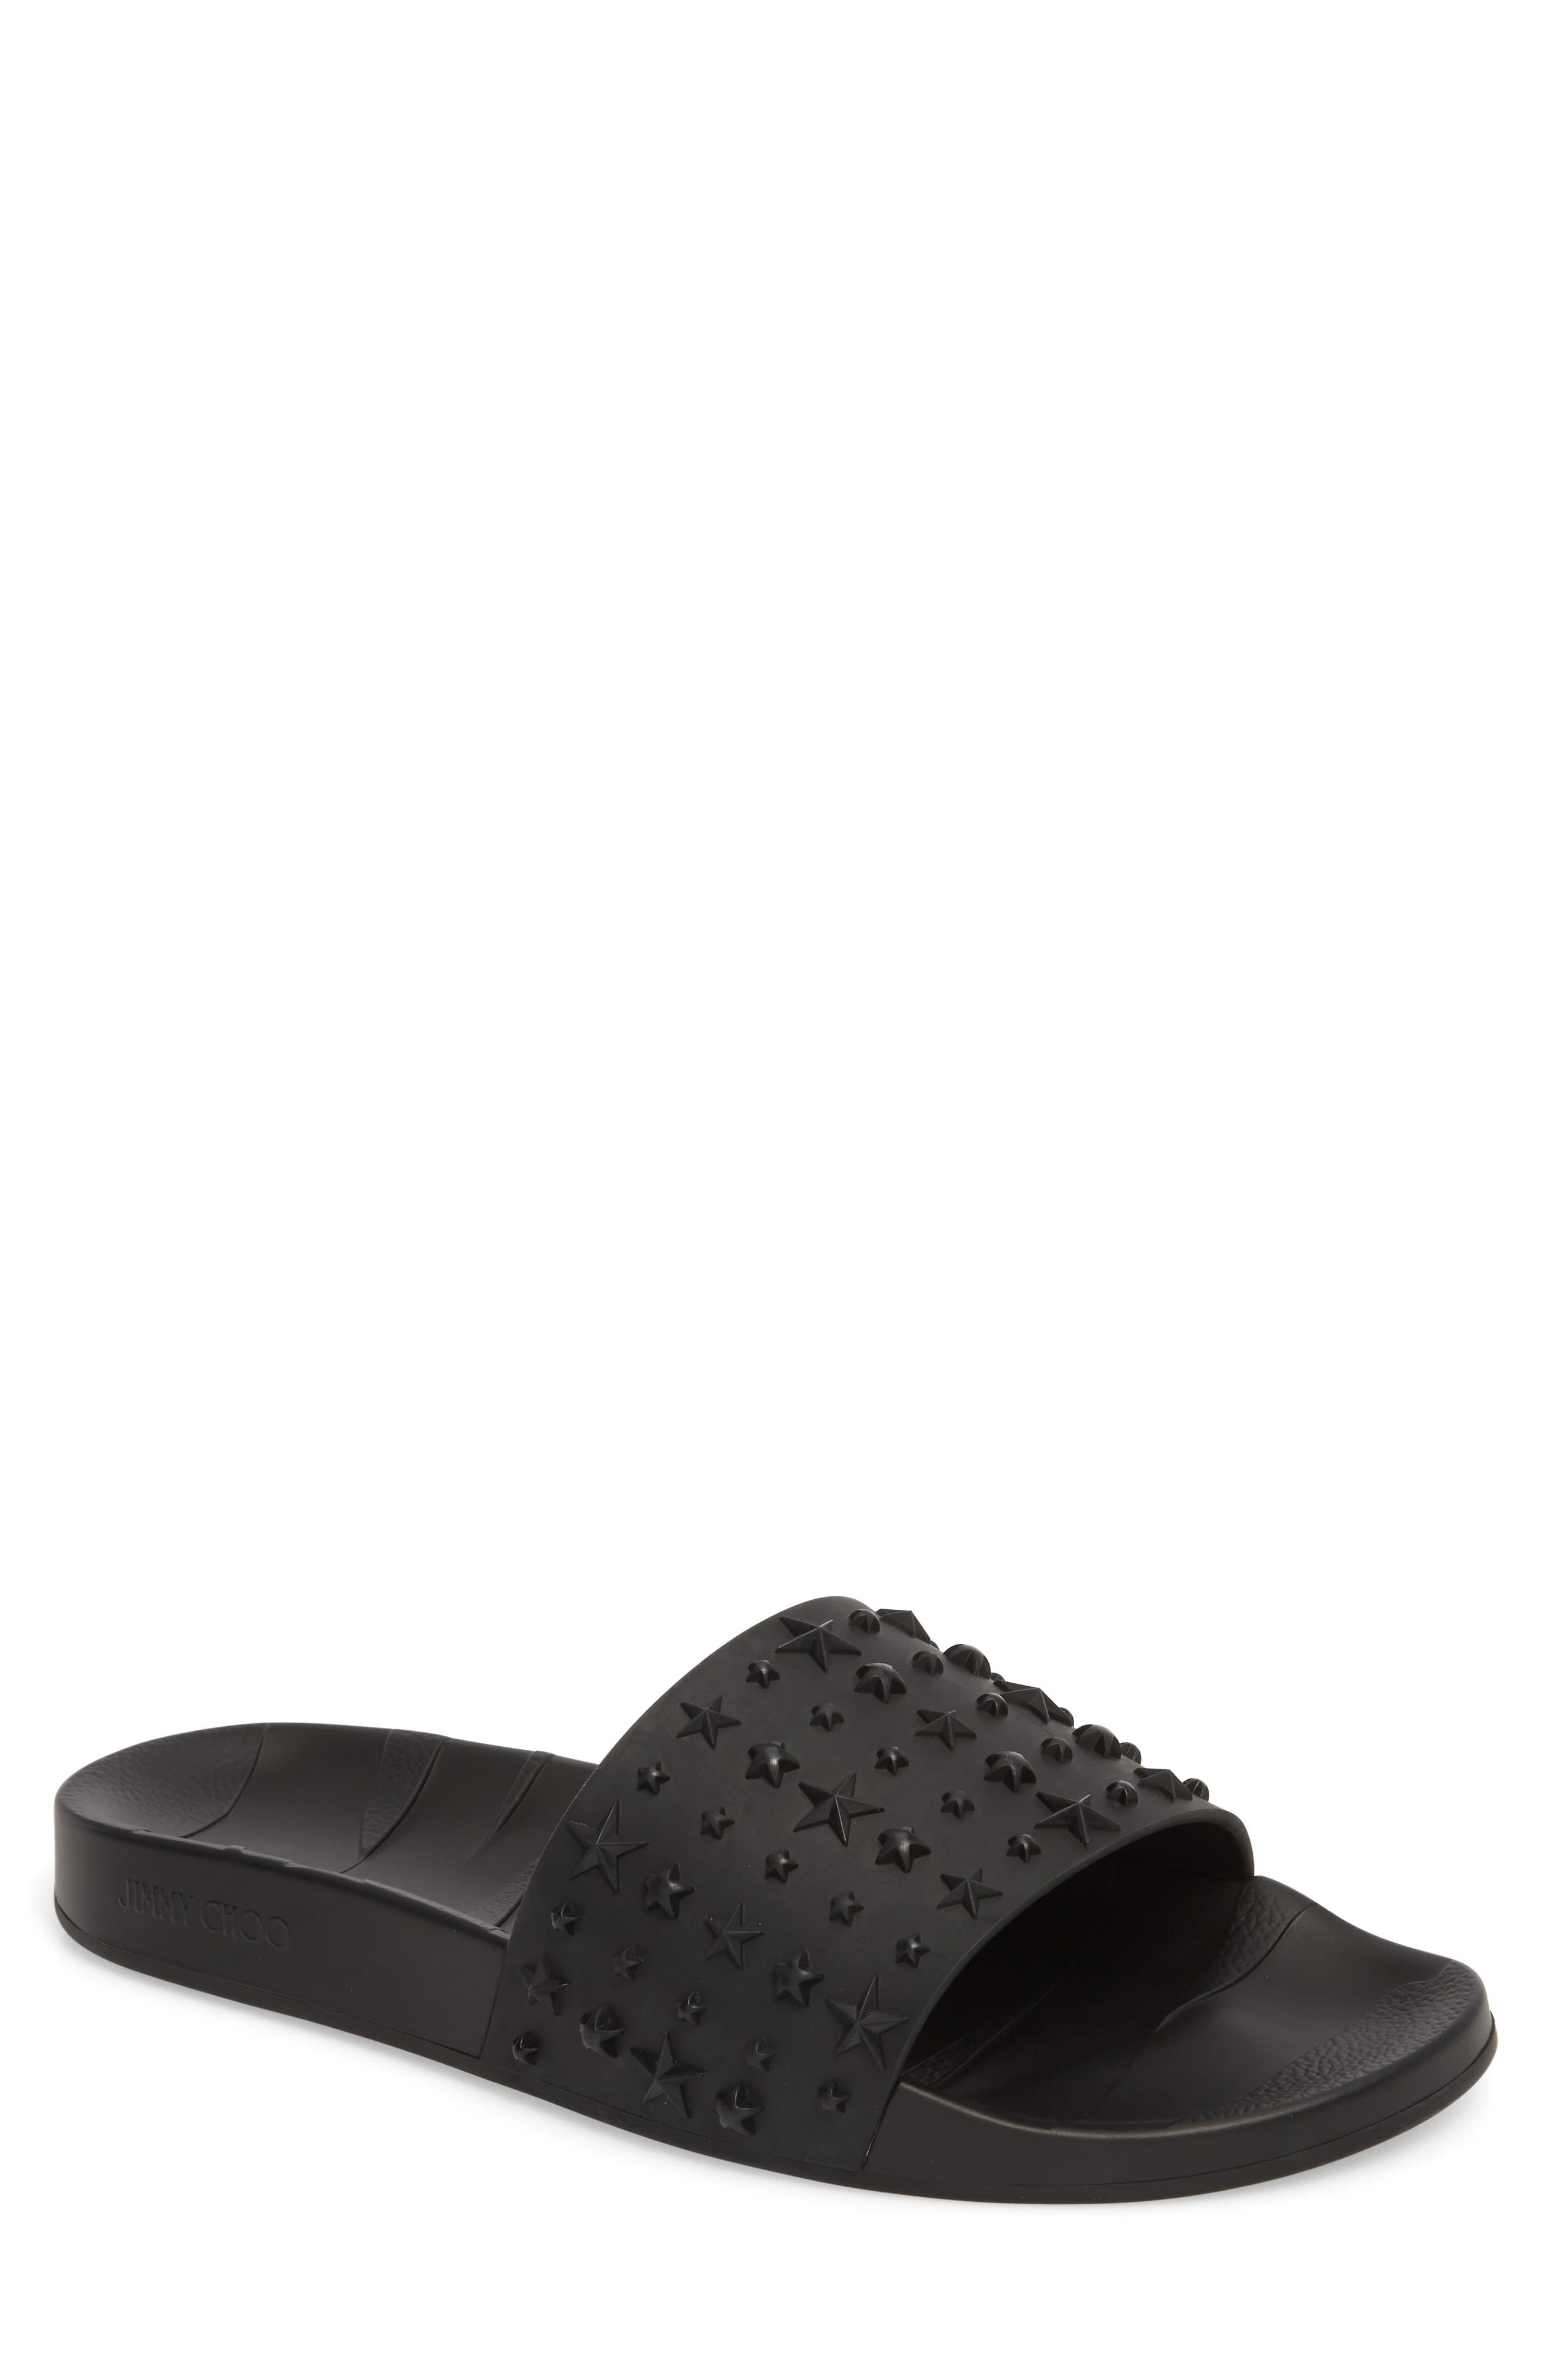 Jimmy choo Men's Rey Star Embossed Sport Slide 1YGMkTJ